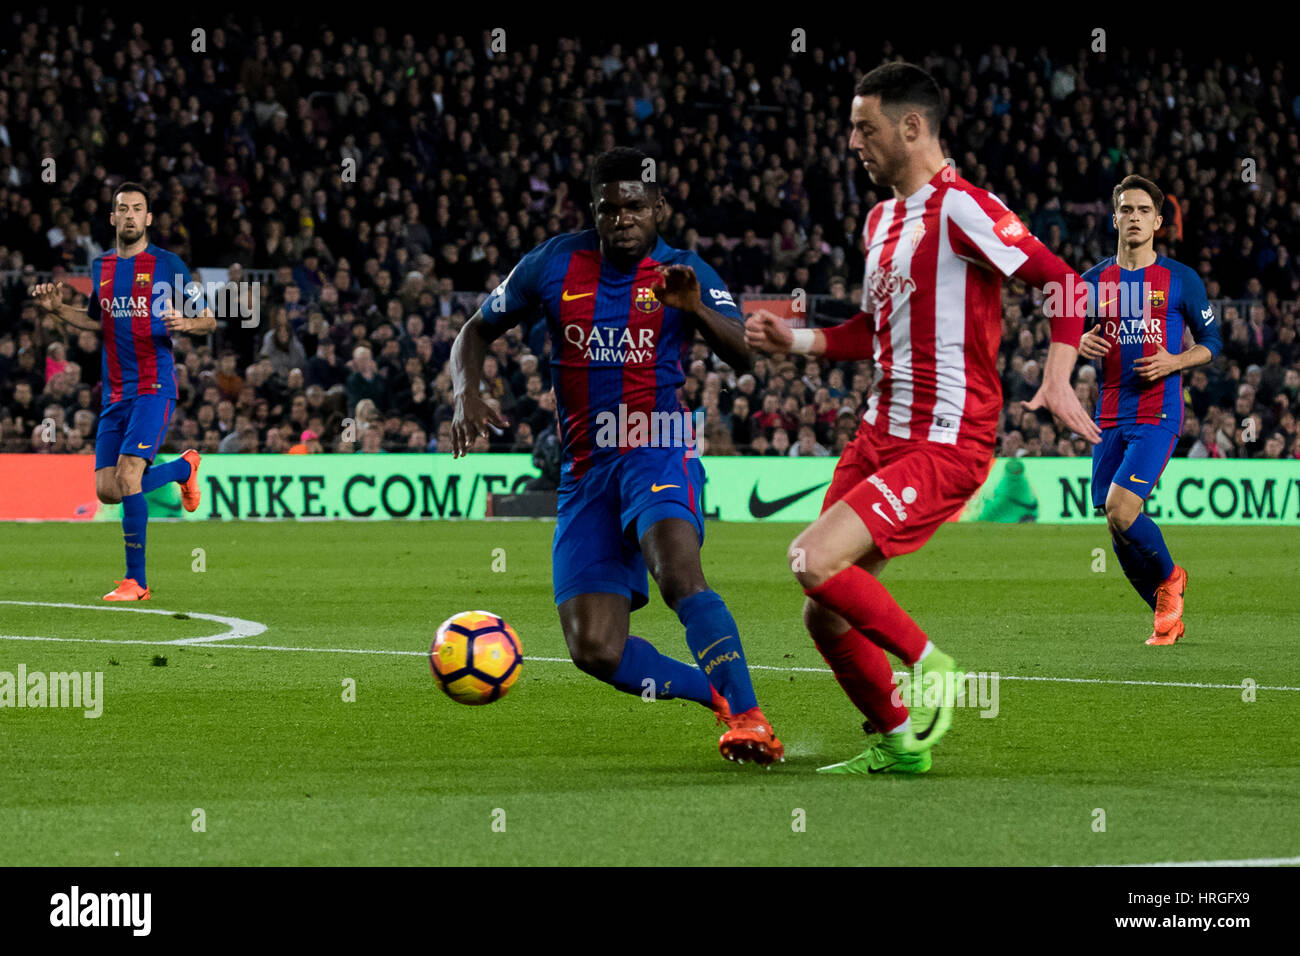 Camp Not Stadium, Barcelona, Spain. 1st March, 2017. Burgui snaps from Umtiti at Camp Nou Stadium, Barcelona, Spain. - Stock Image